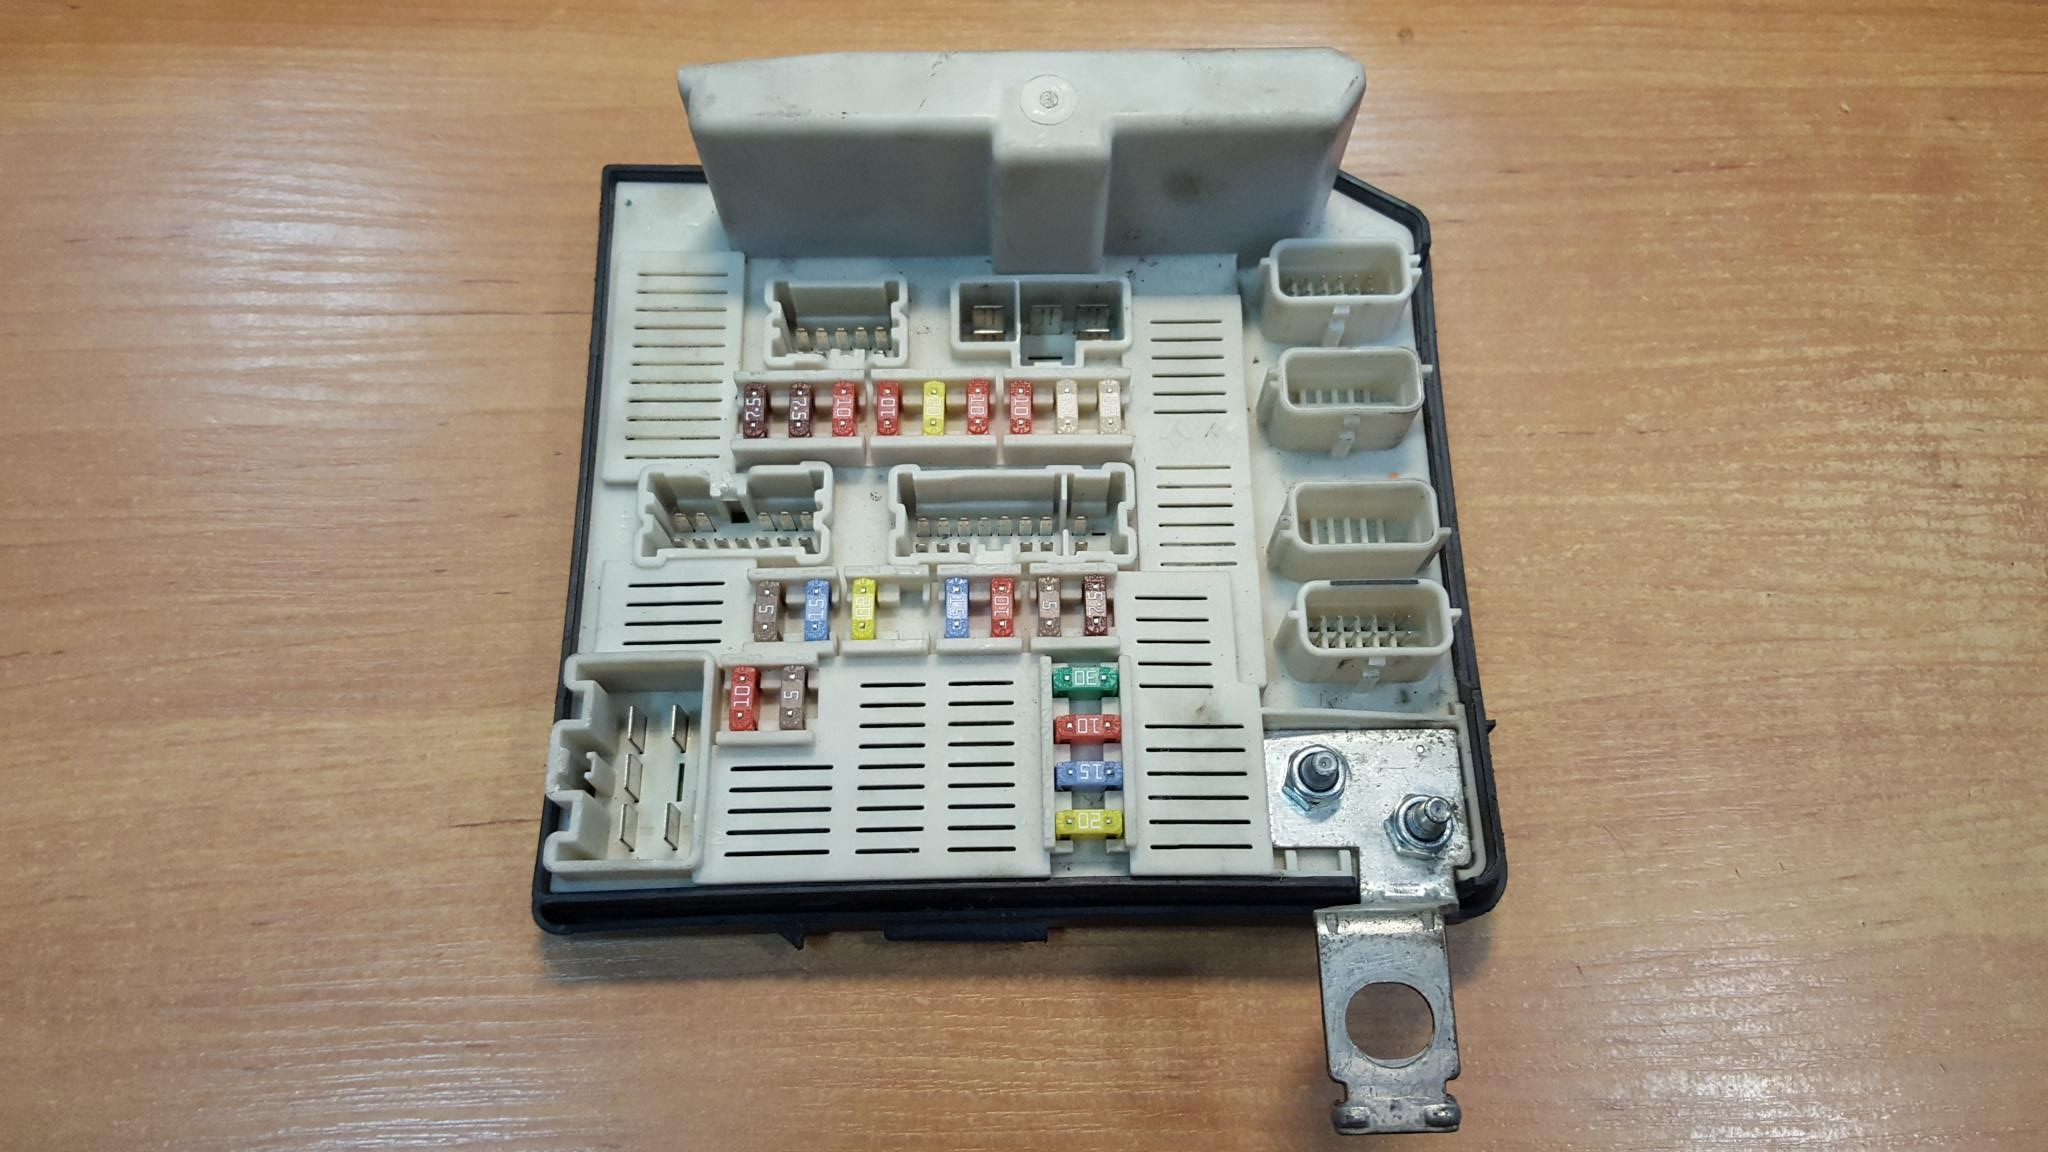 Renault Megane Grand Scenic Fuse Box Location Wiring Diagrams Reno U2022 138dhw Co Nissan Juke Shock Absorber